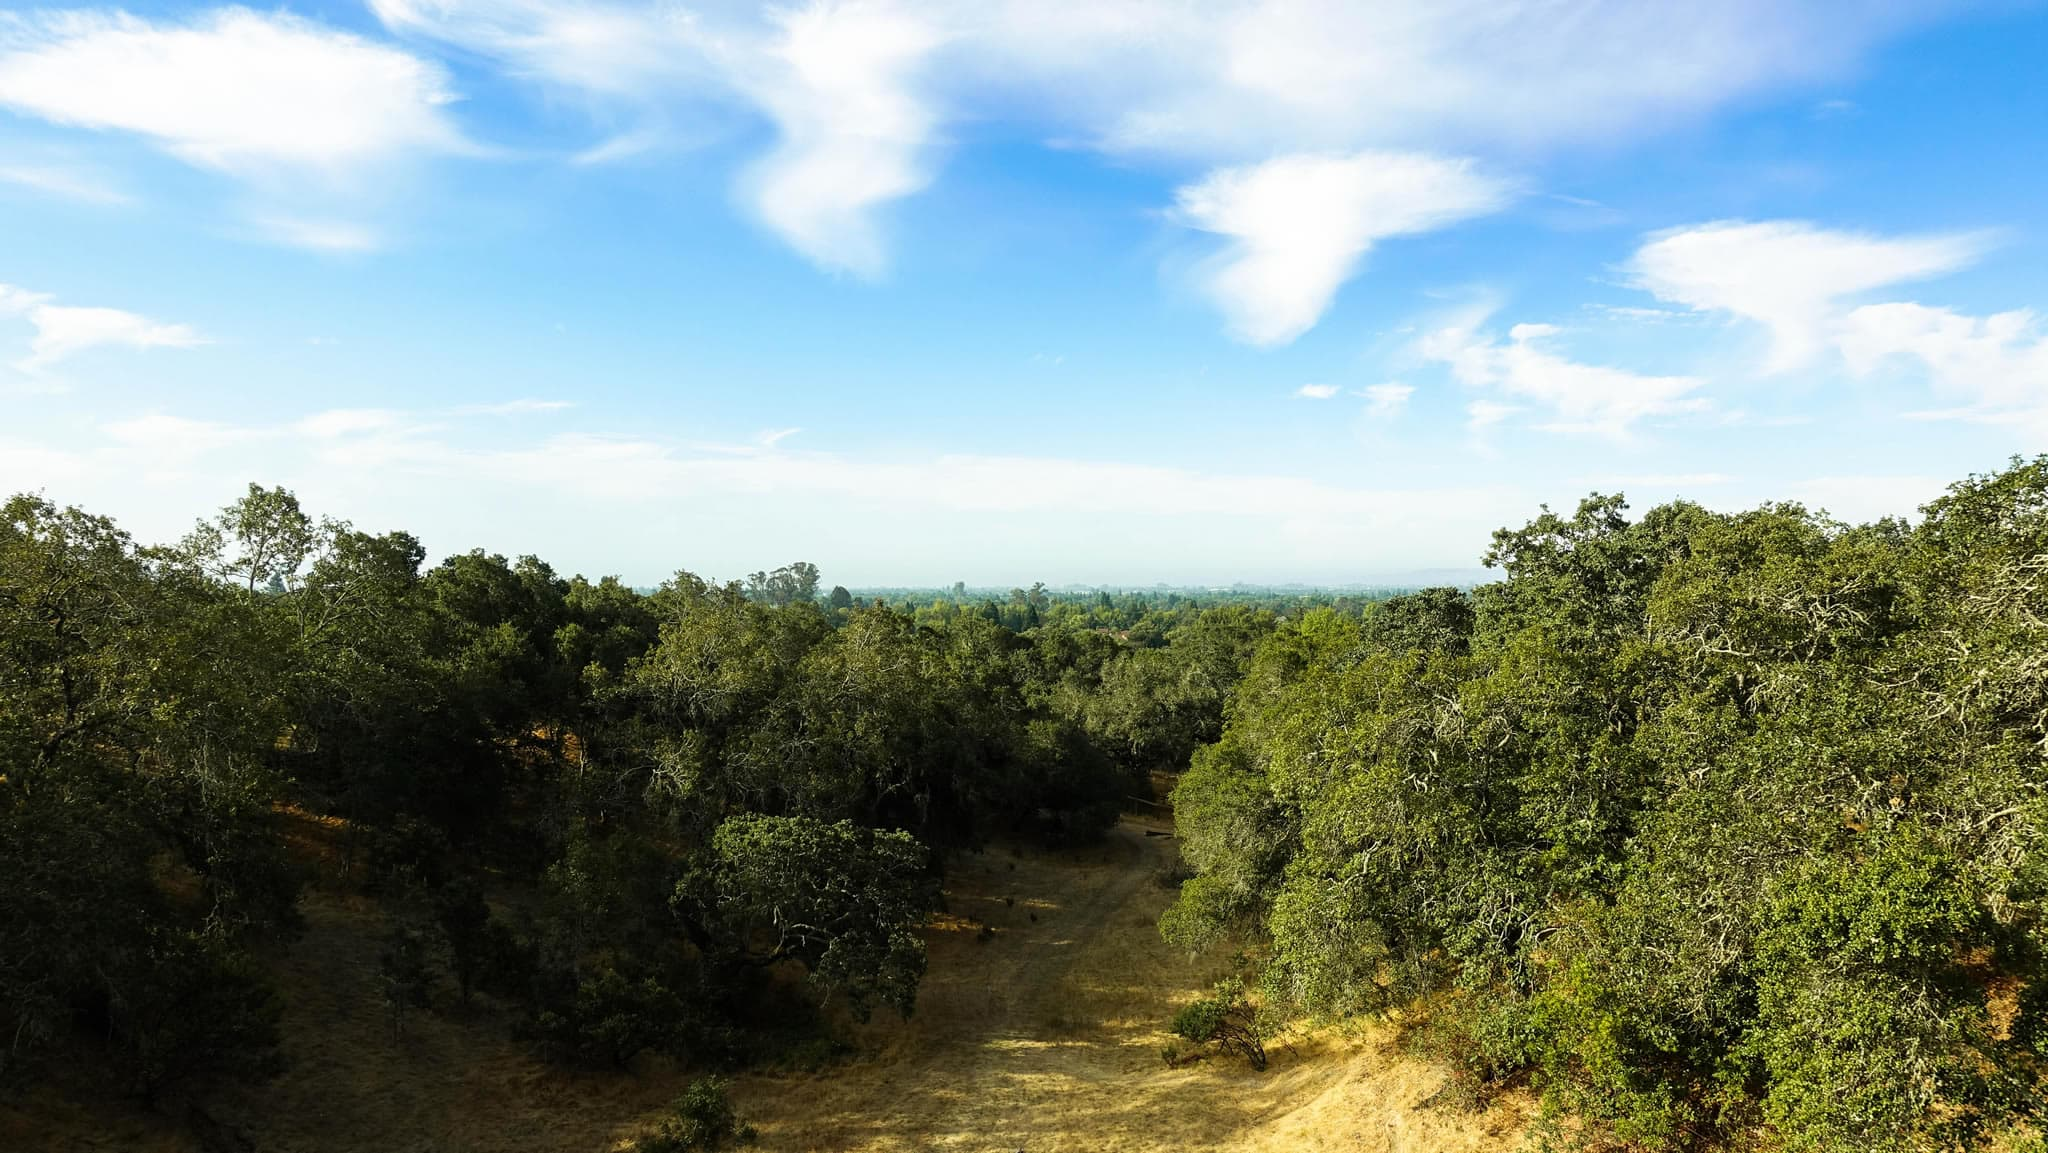 Hike to the heights of Foothills Park's lookout points